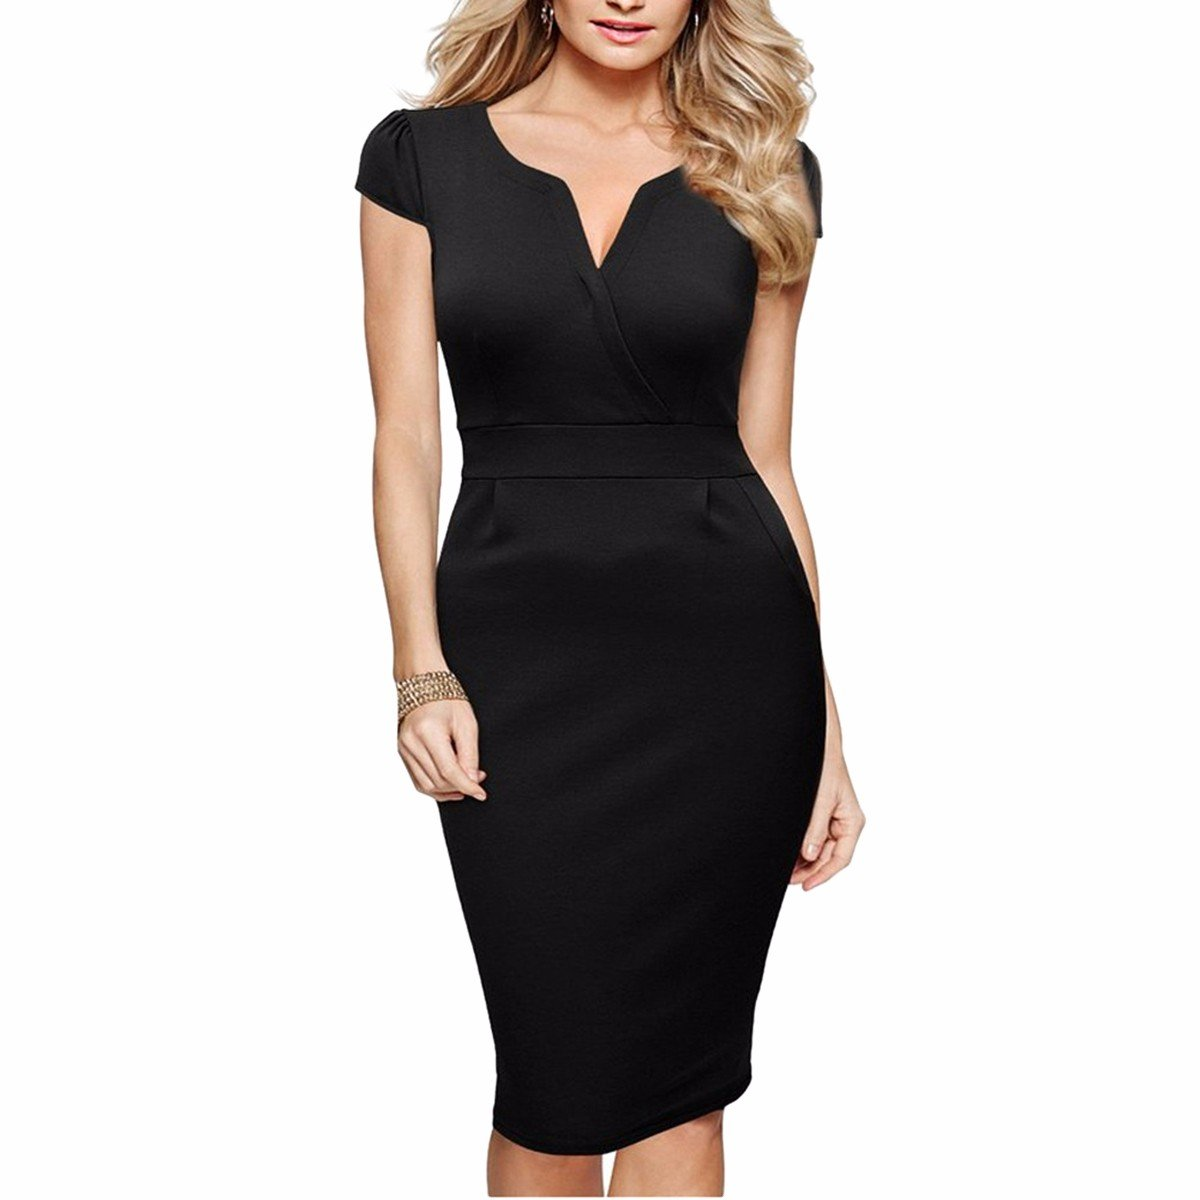 Samtree Women's Solid Color Floral V-Neck Business Office Work Bodycon Pencil Dress(Asia M,Black)